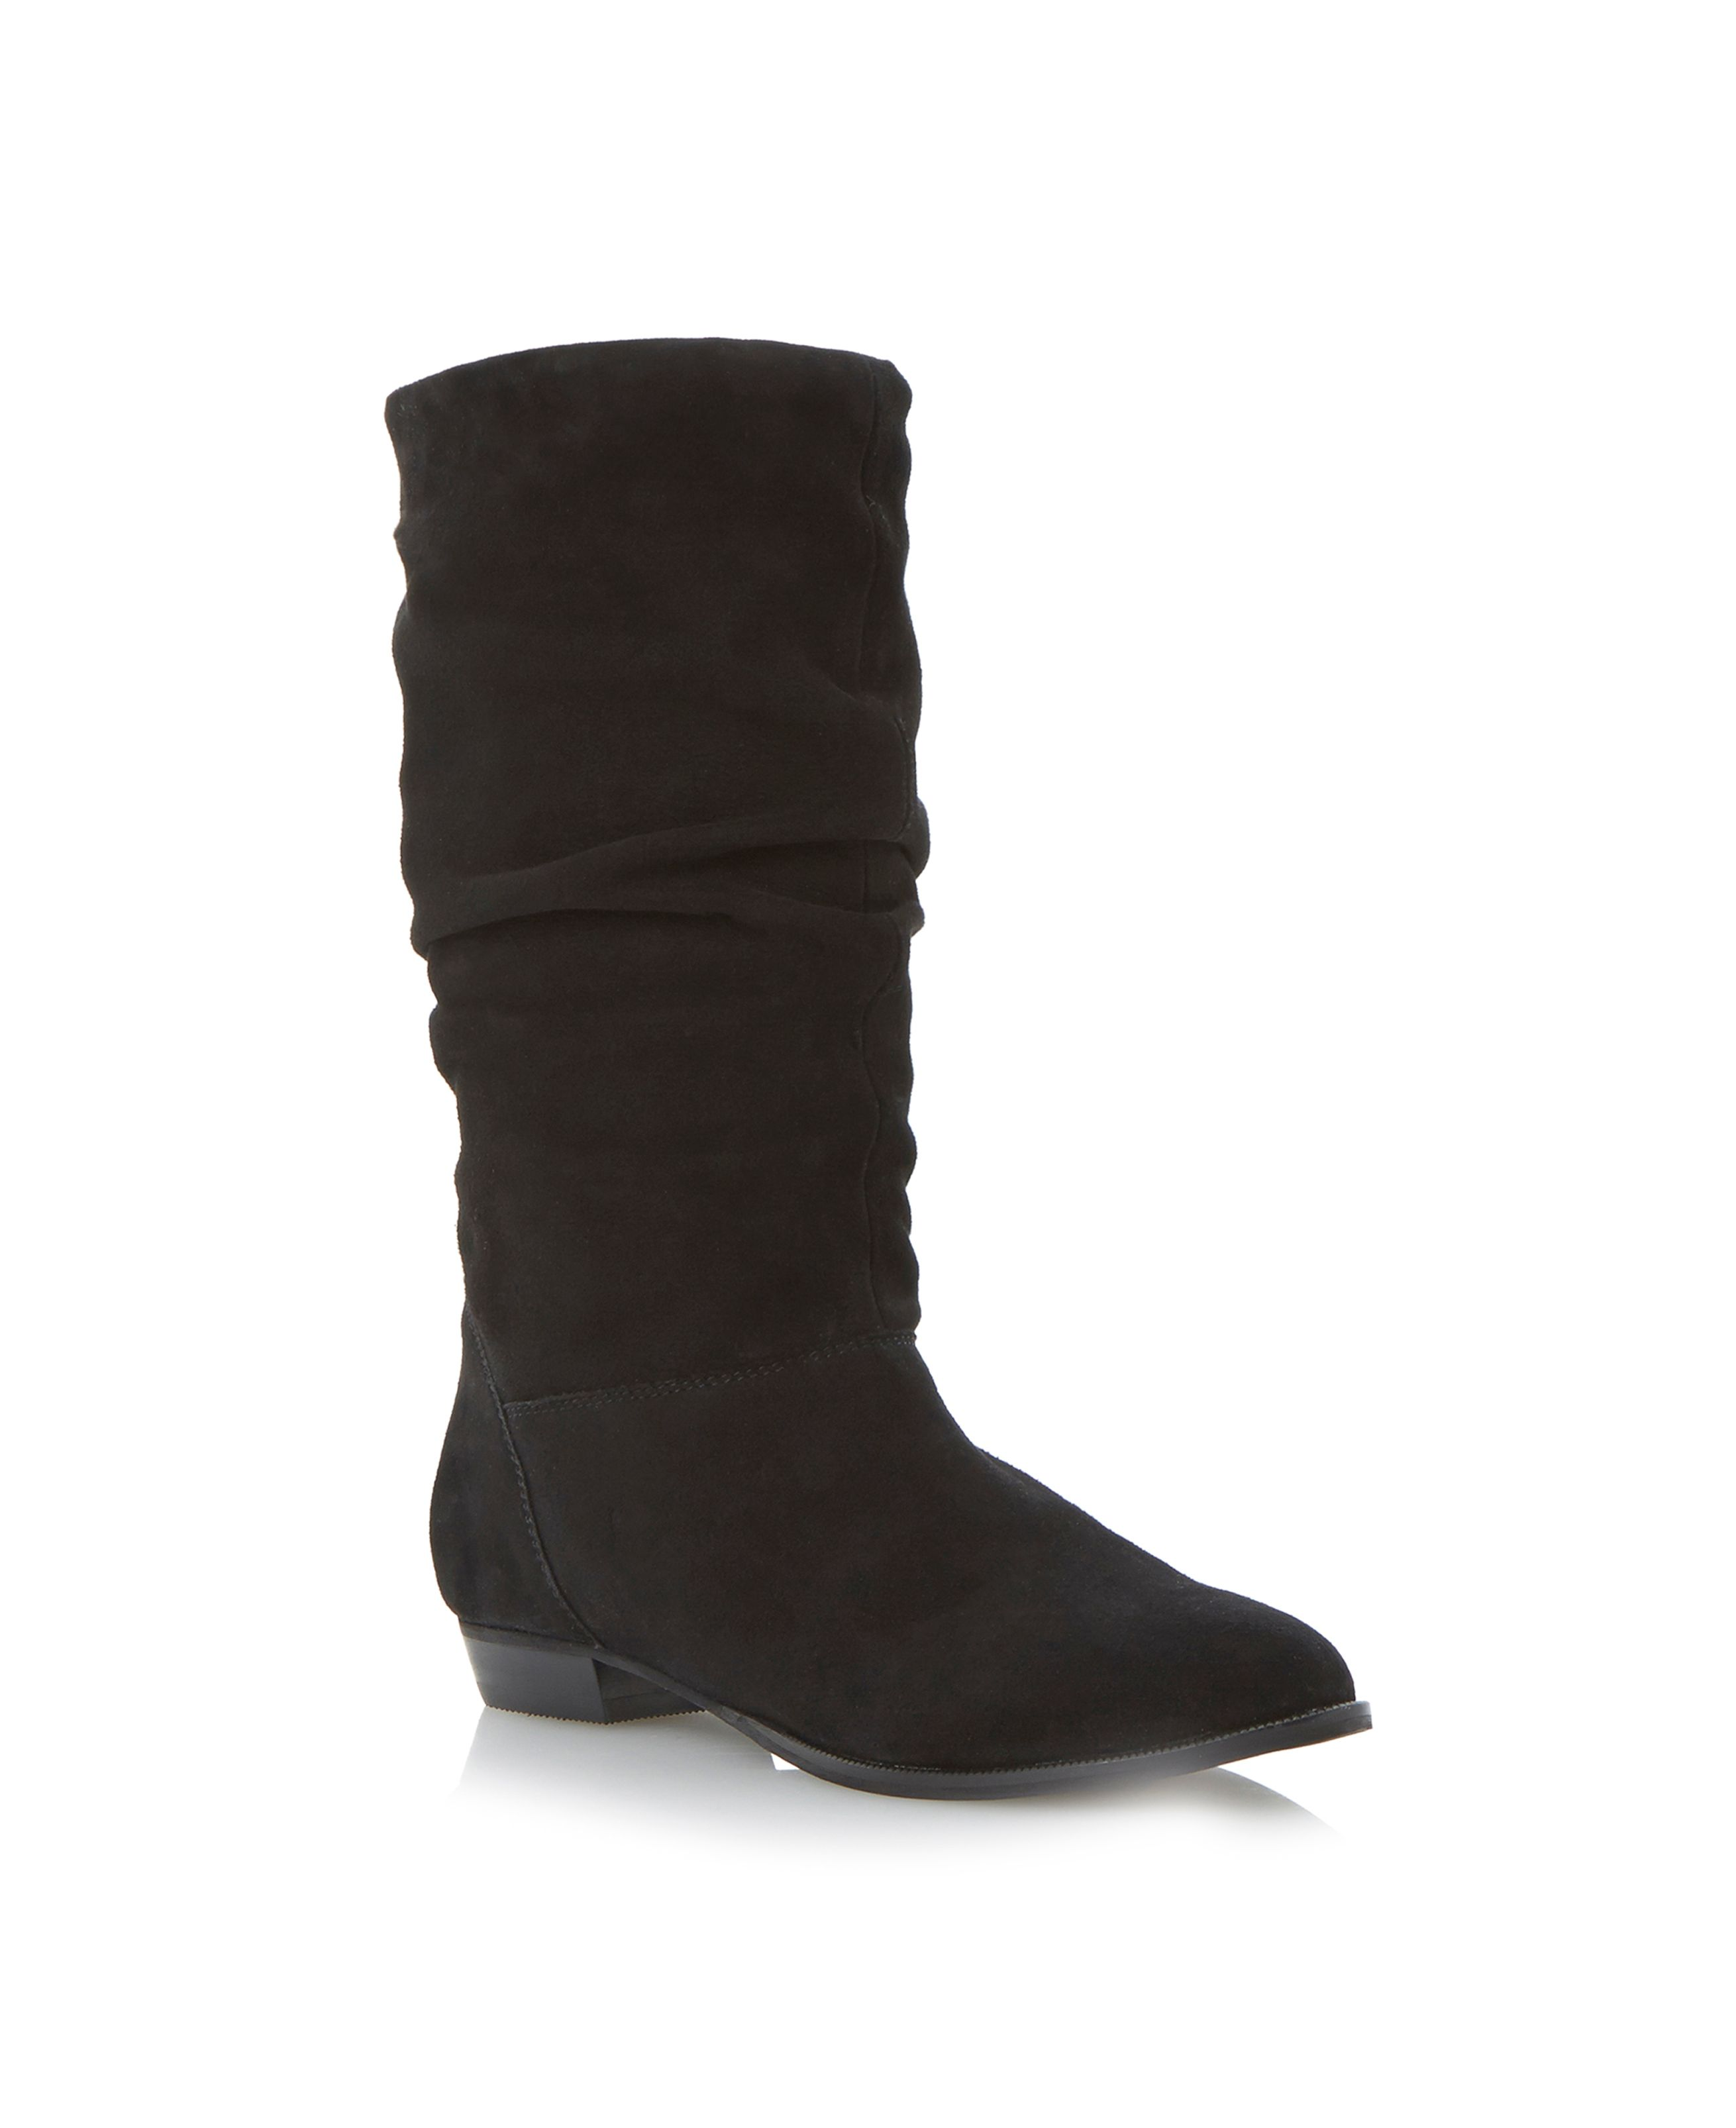 Dune Relissa slouch calf boots Black Suede